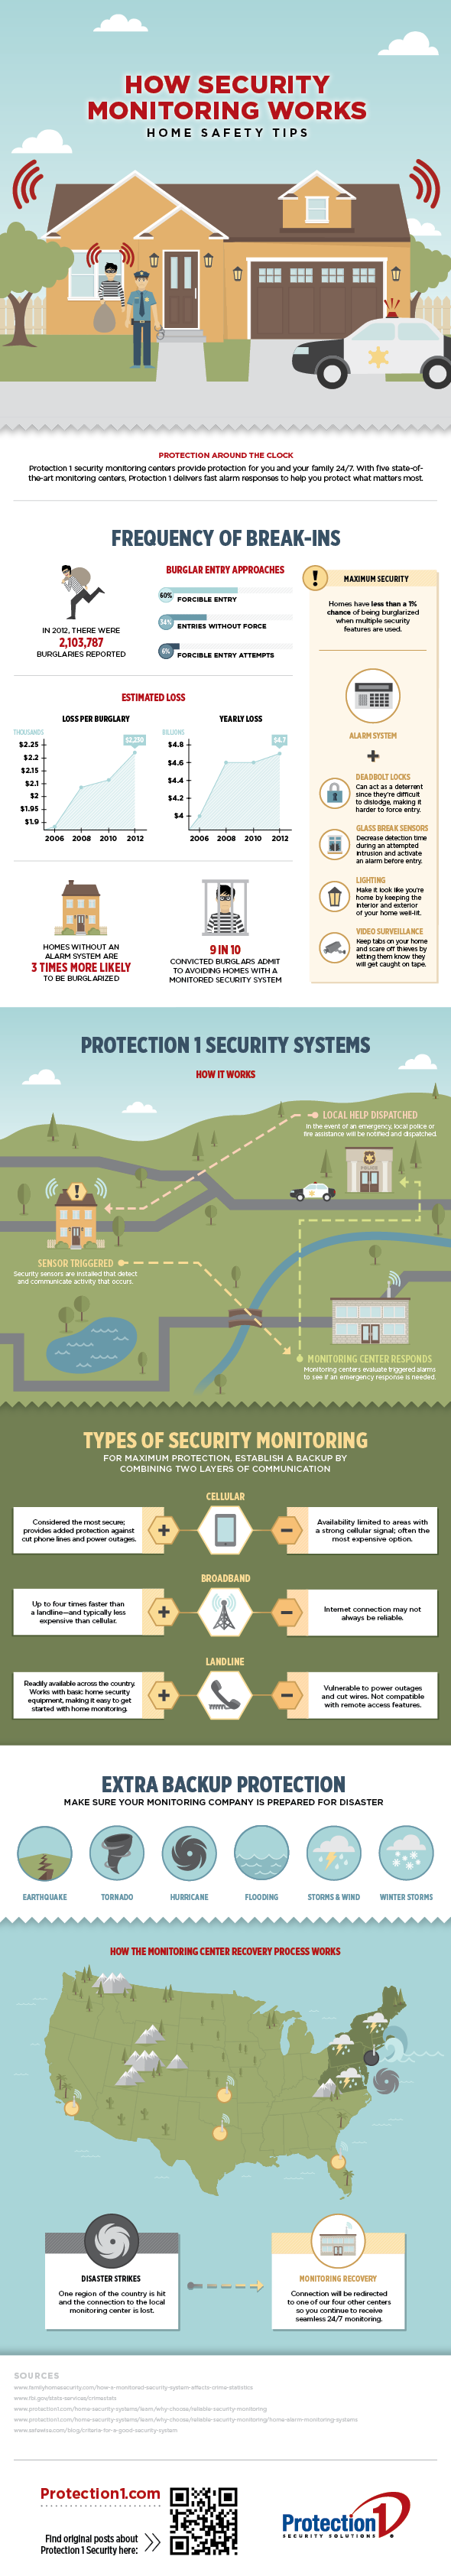 How Security Monitoring Works